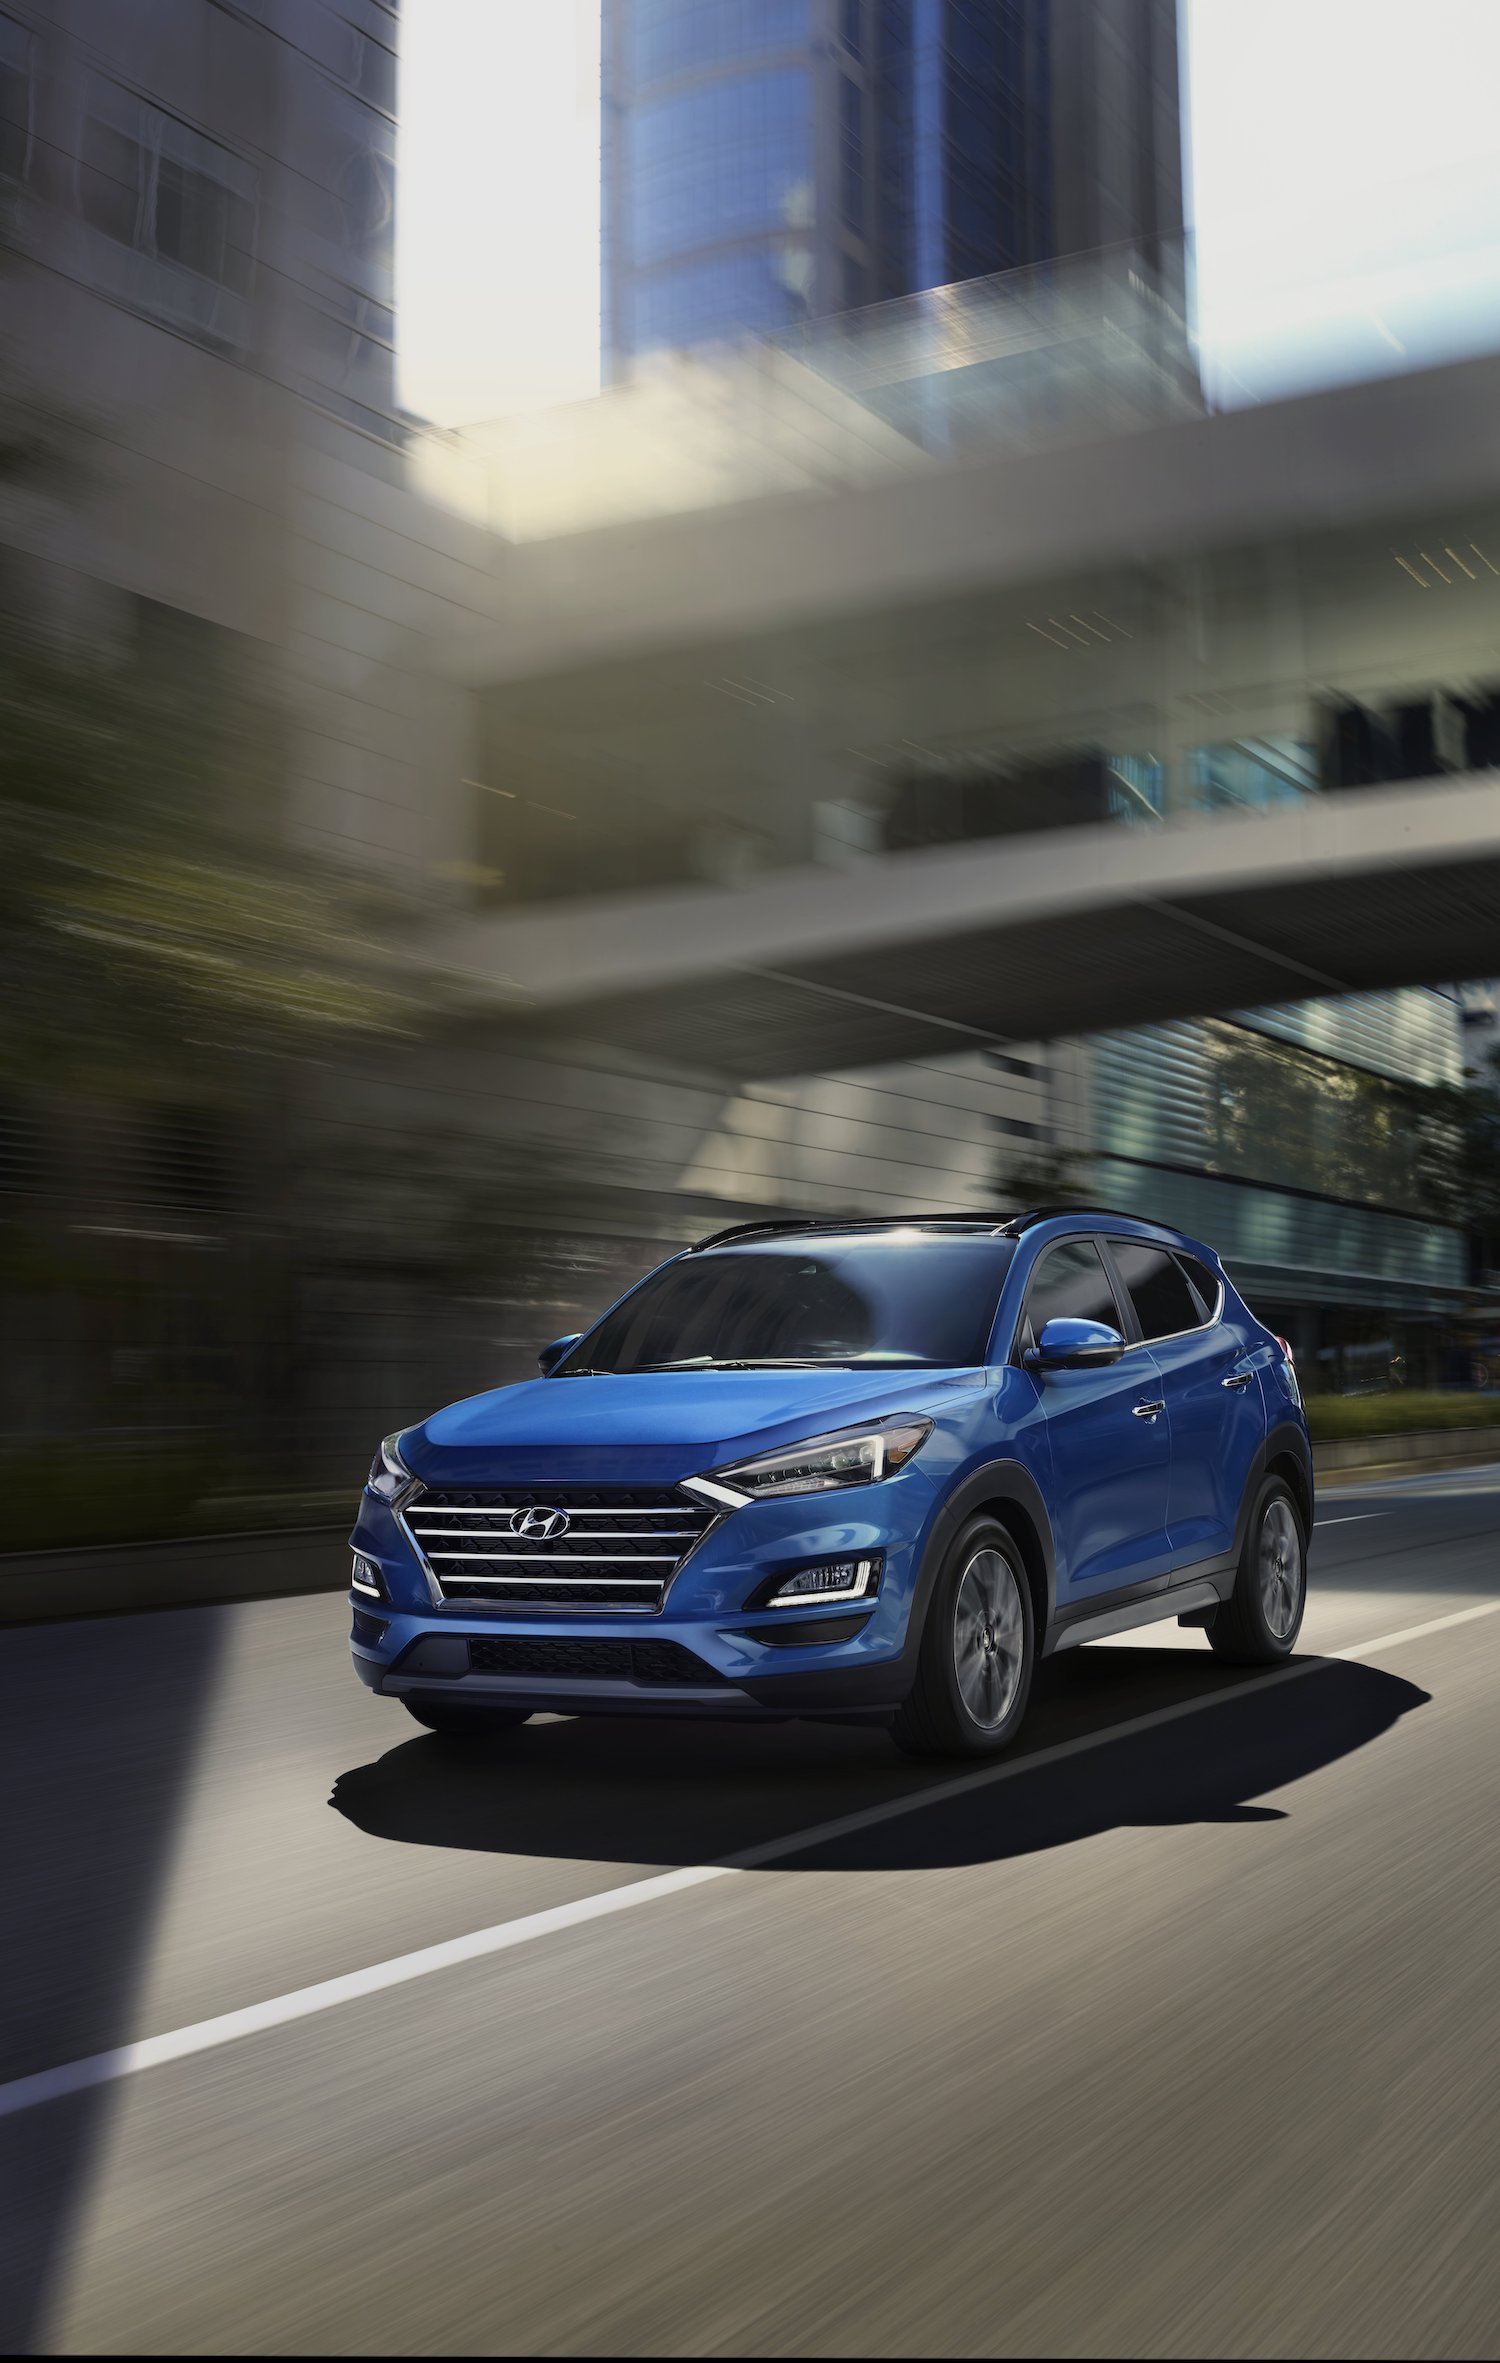 Blue hyundai tucson running on road